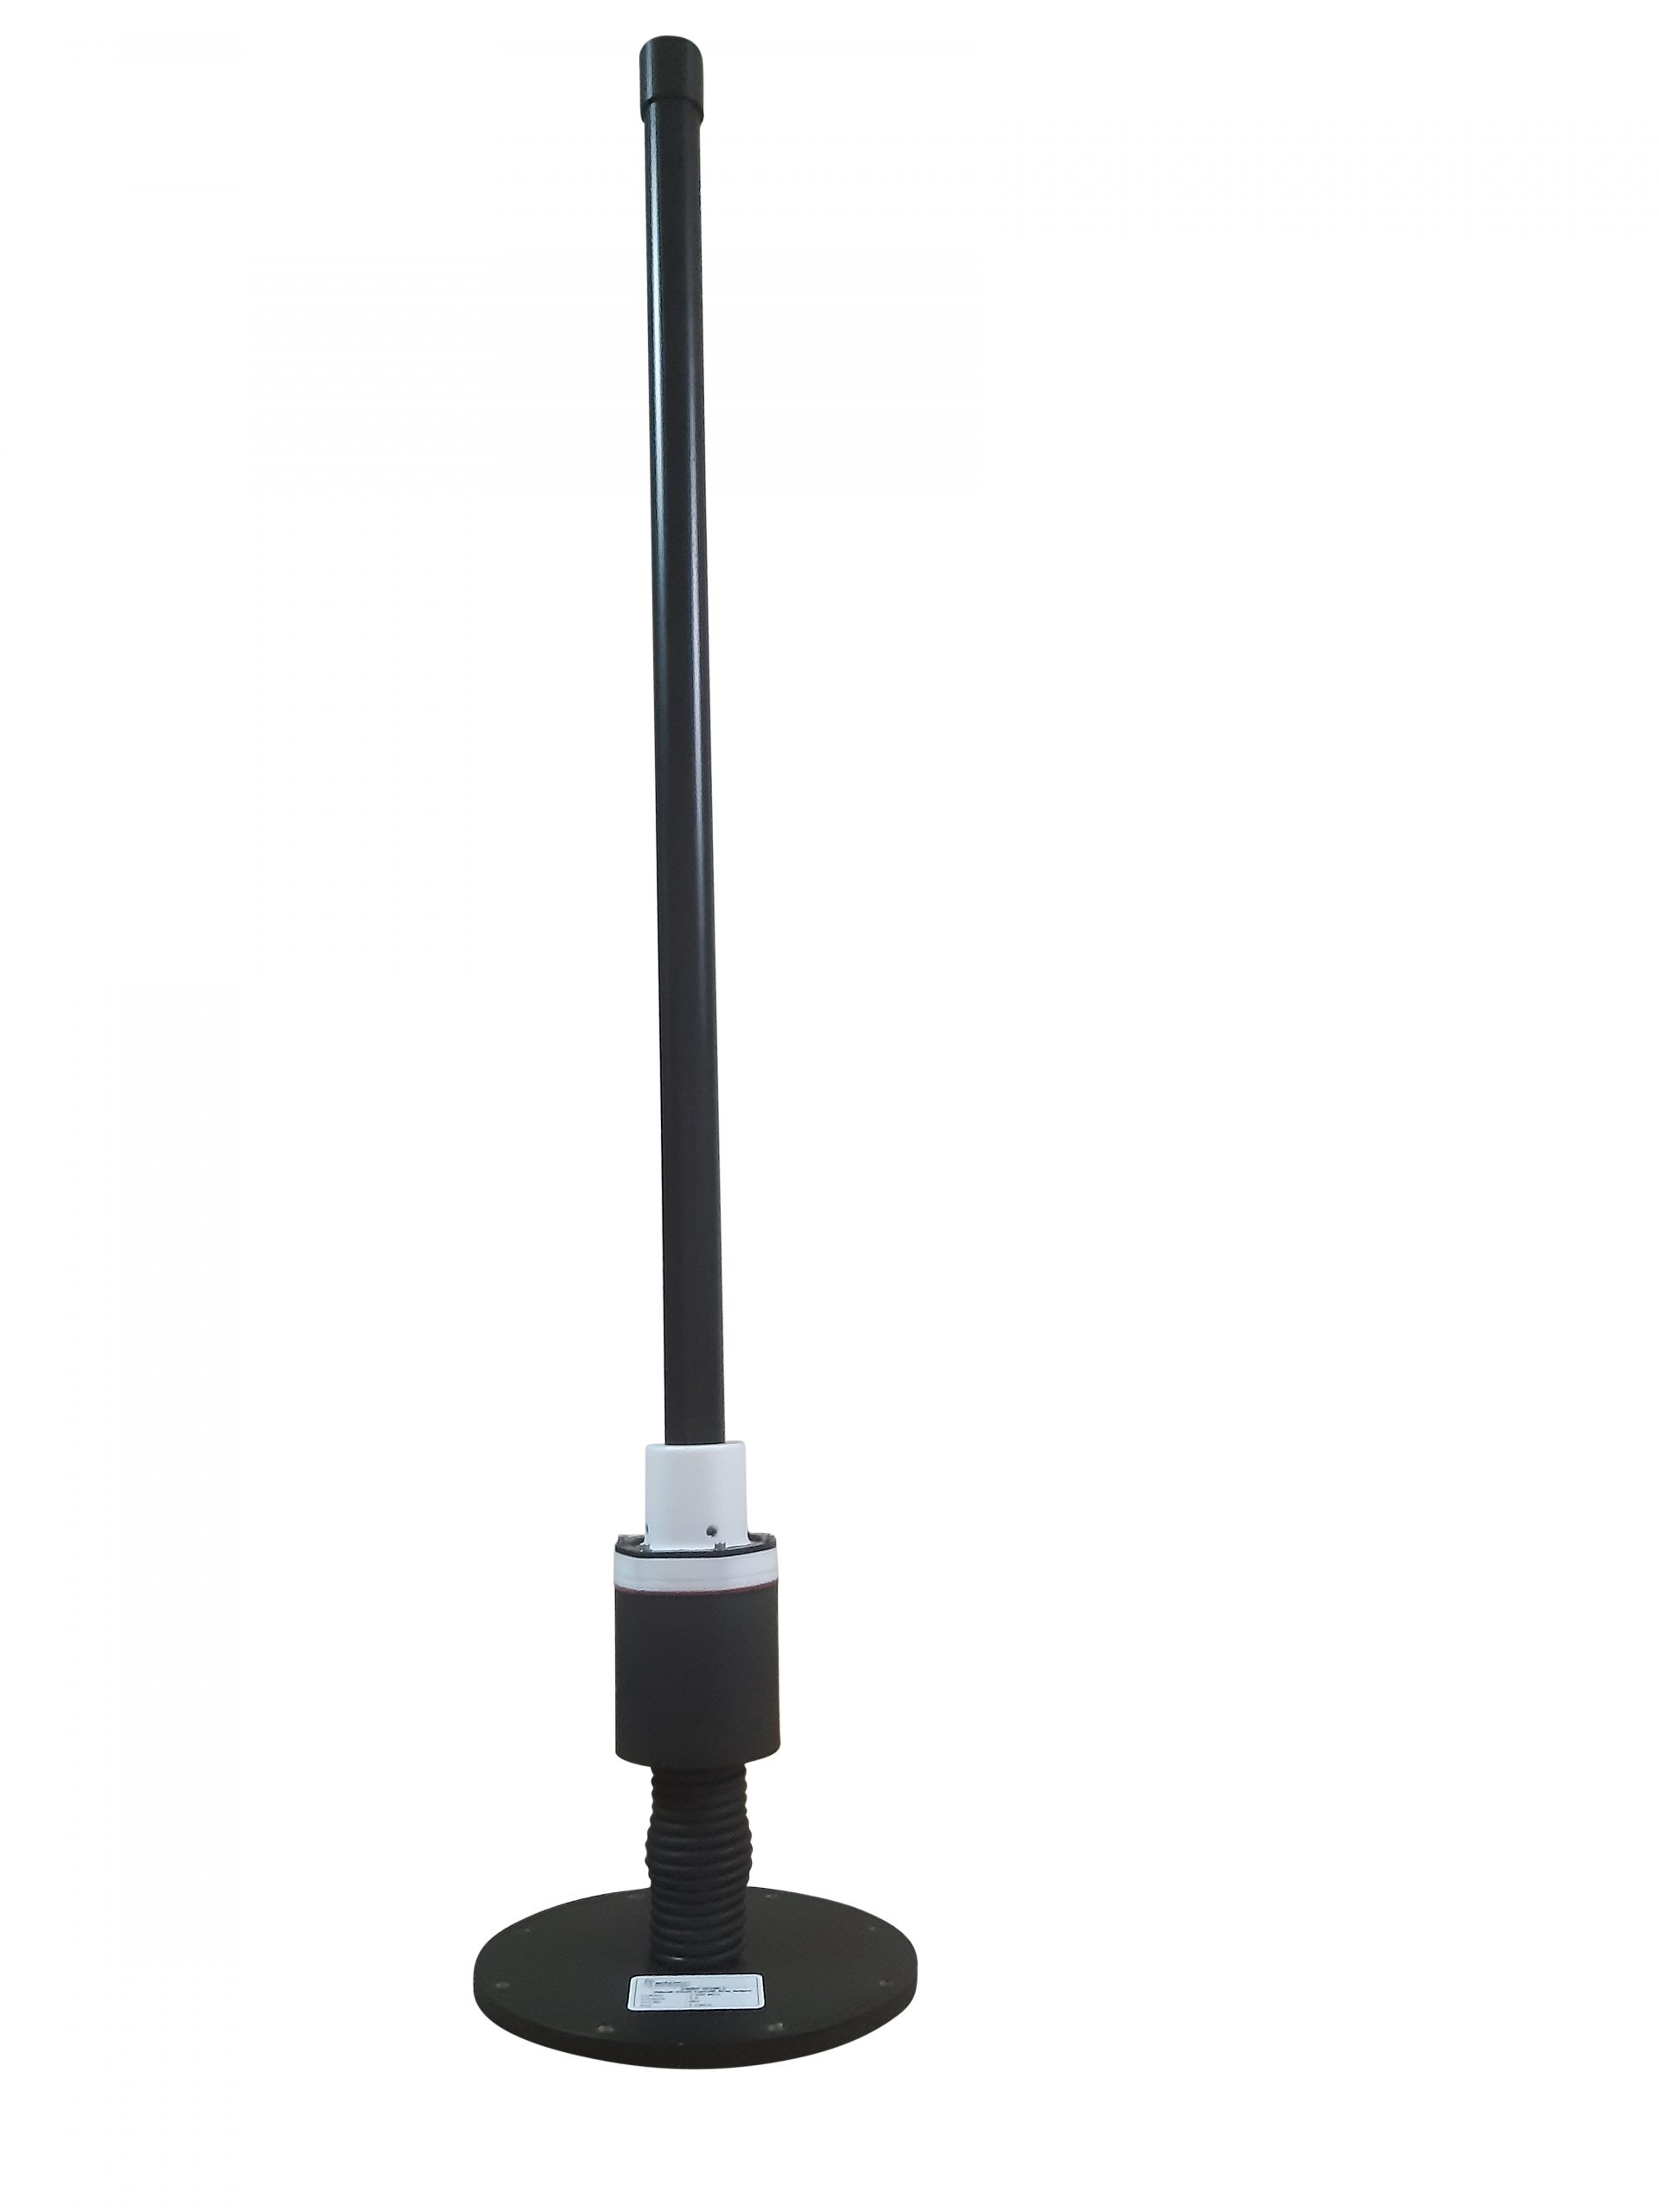 High Power Omnidirectional Jammer Antenna (Vehicle and Fixed-Site)